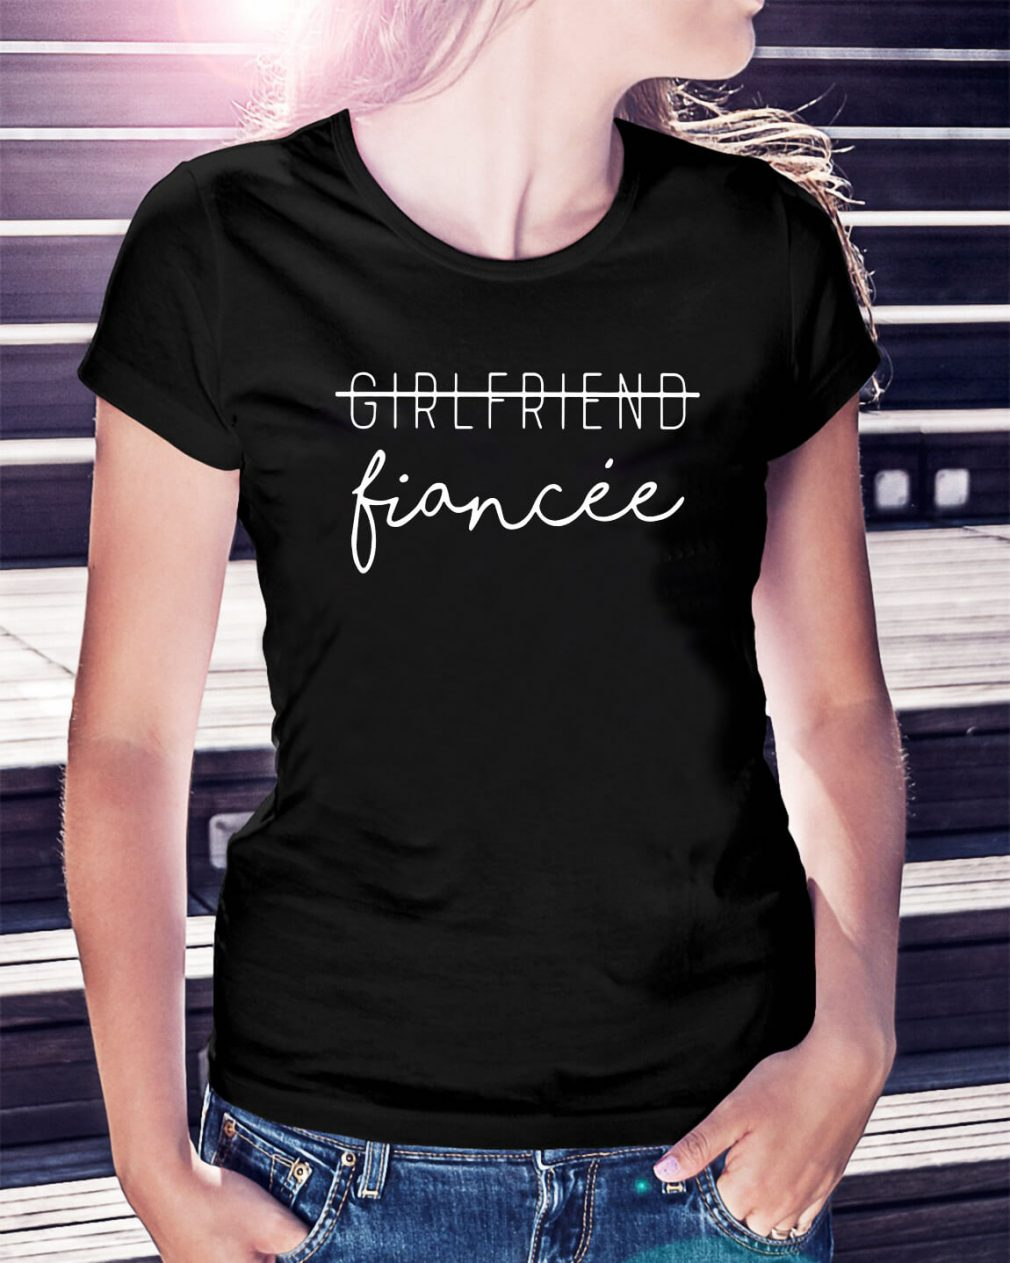 Girlfriend Fiancee Ladies Tee